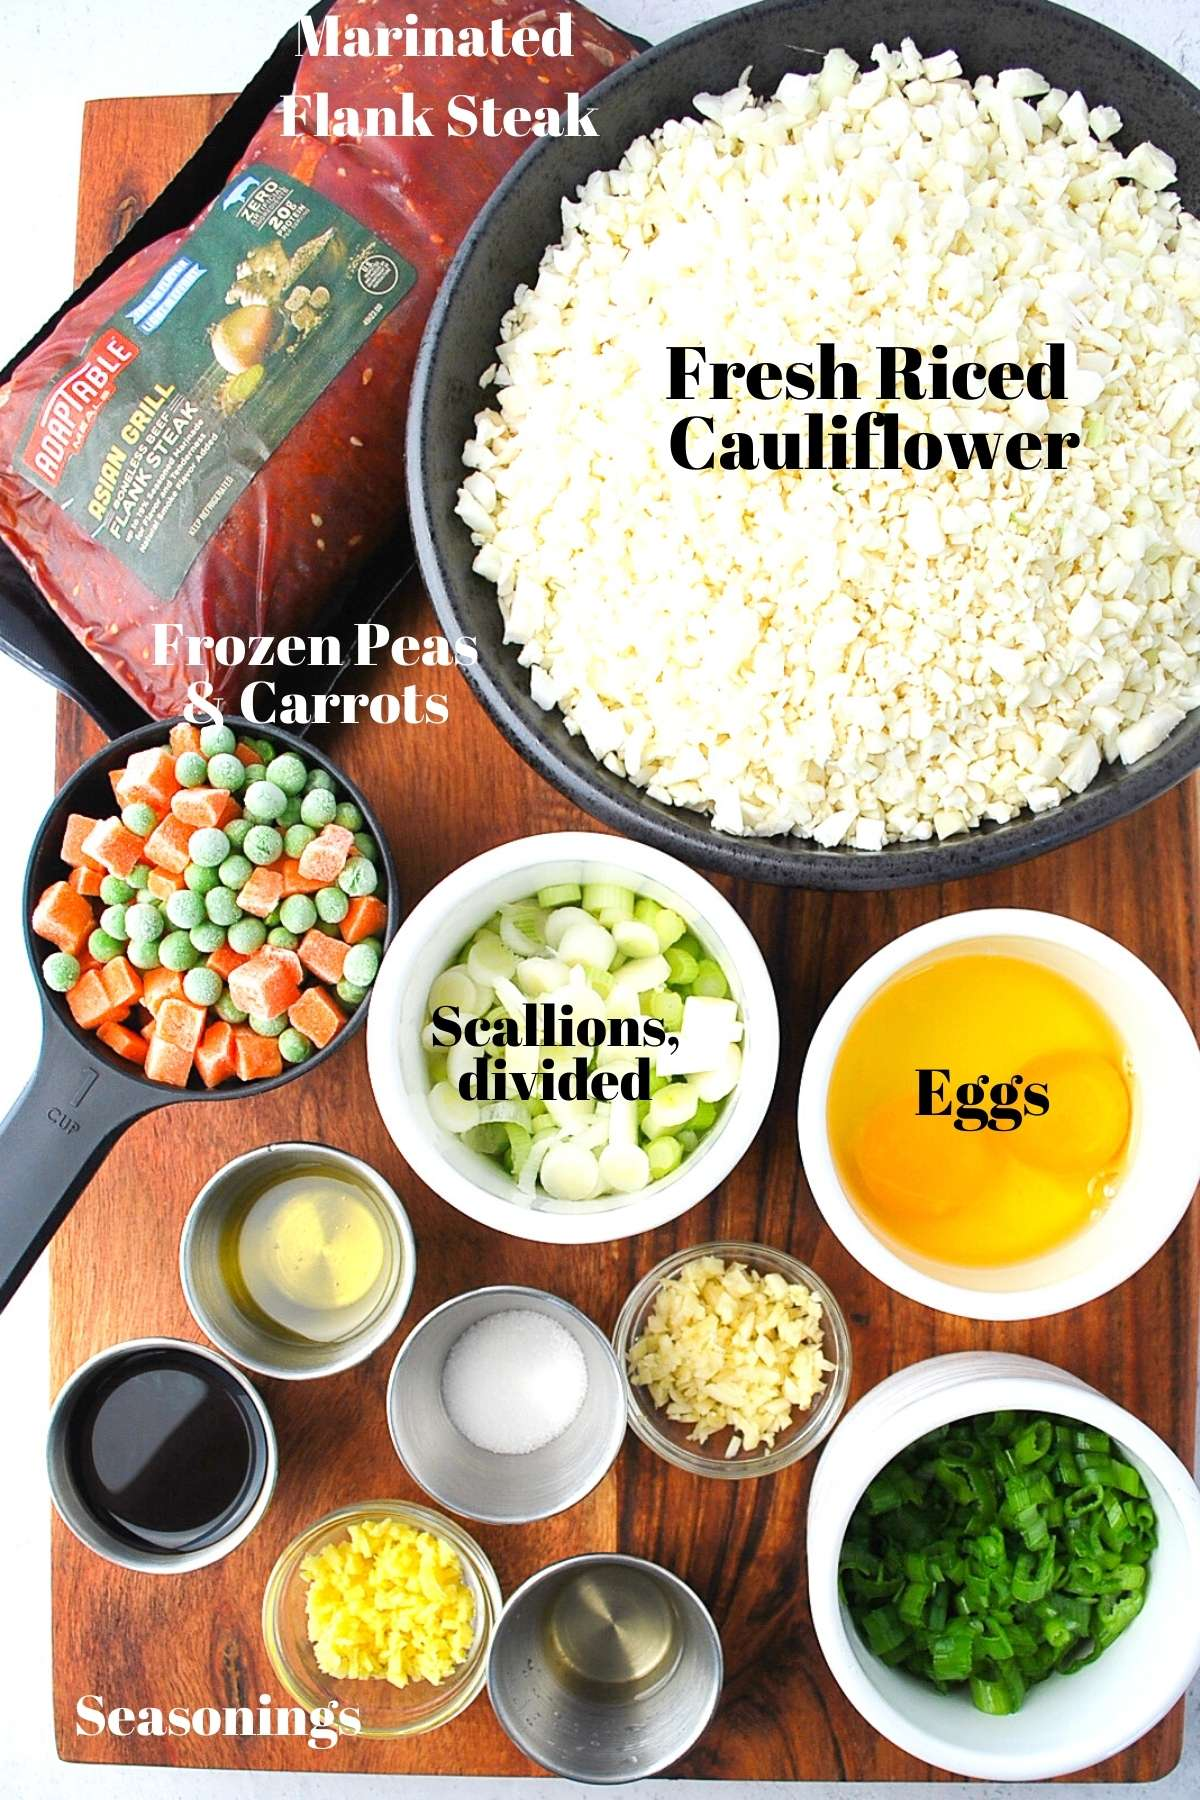 bowls of ingredients for making cauliflower fried rice and flank steak on a wooden board